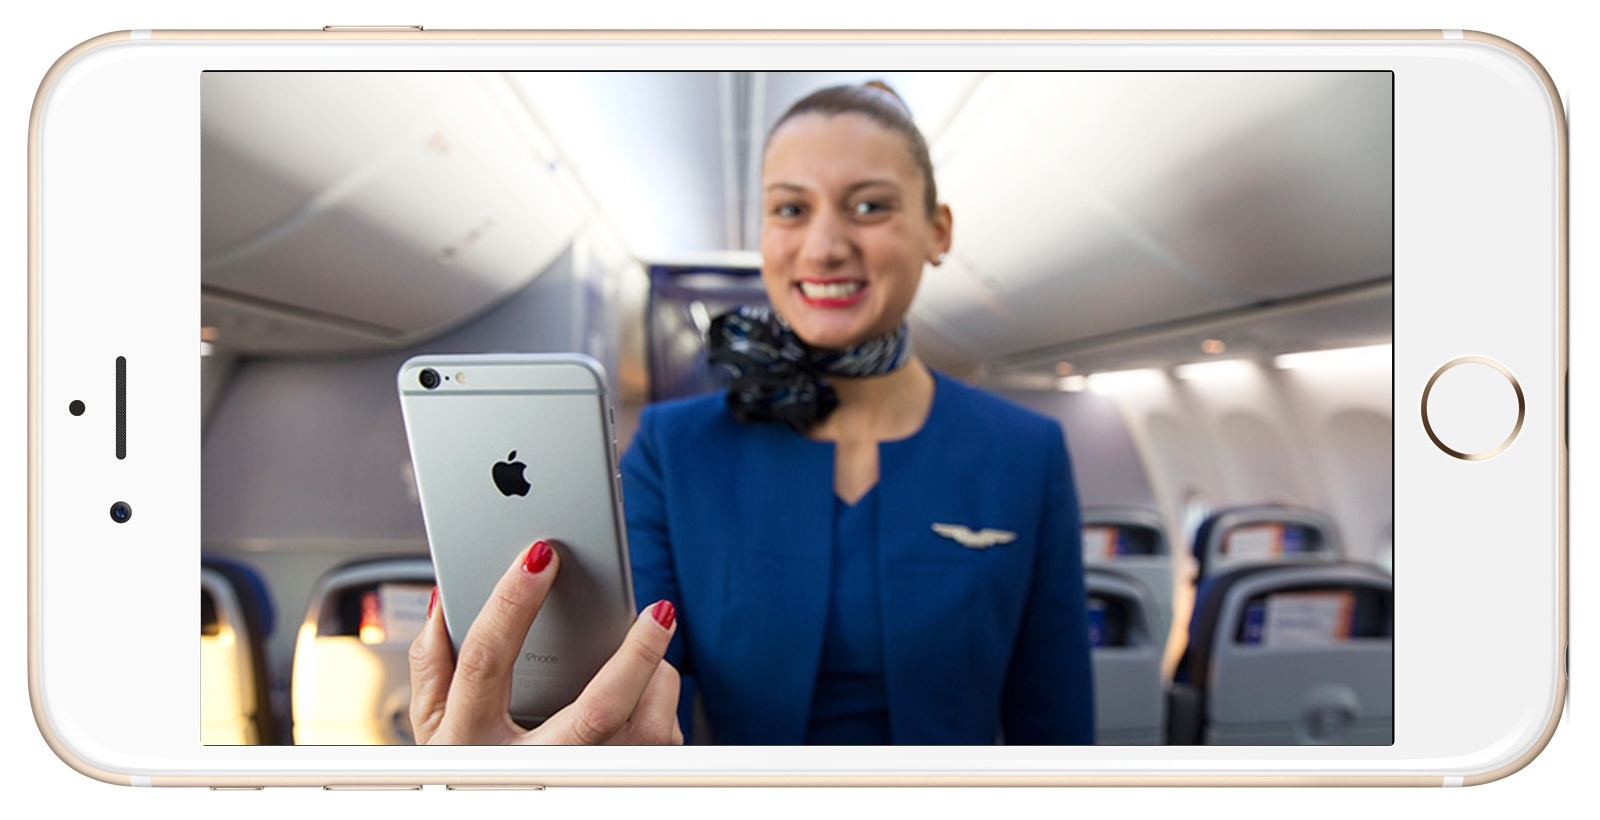 iPhone 6 Plus Now Flying the Friendly Skies